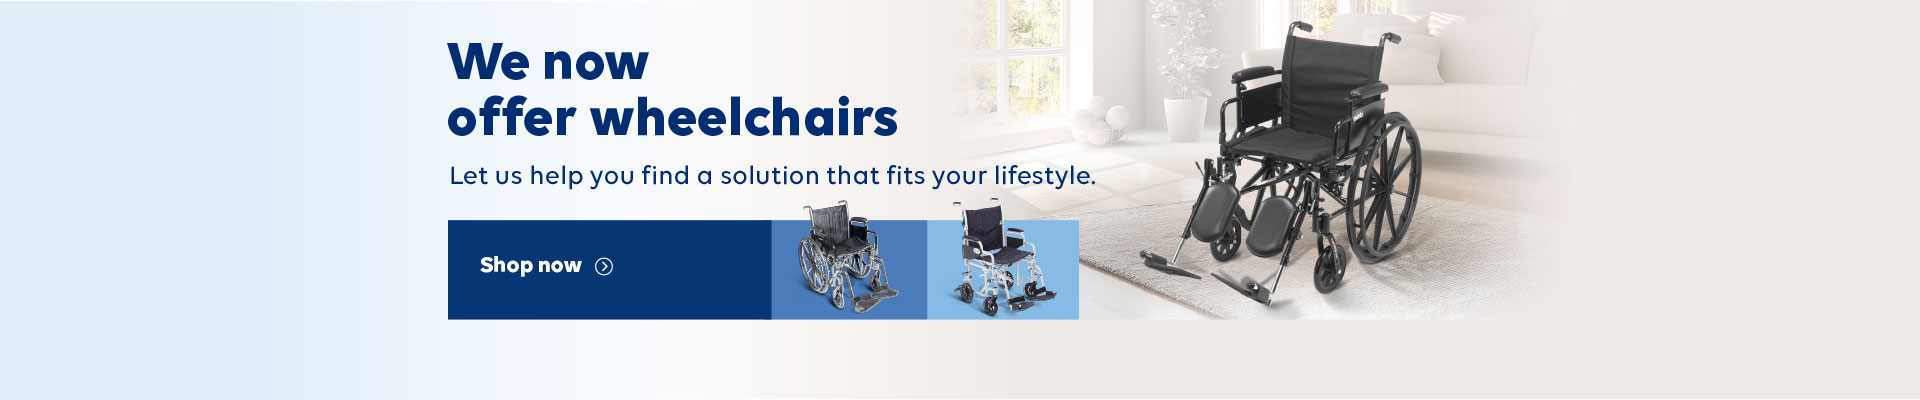 We now offer wheelchairs. Let us help you find a solution that fits your lifestyle. Shop now.